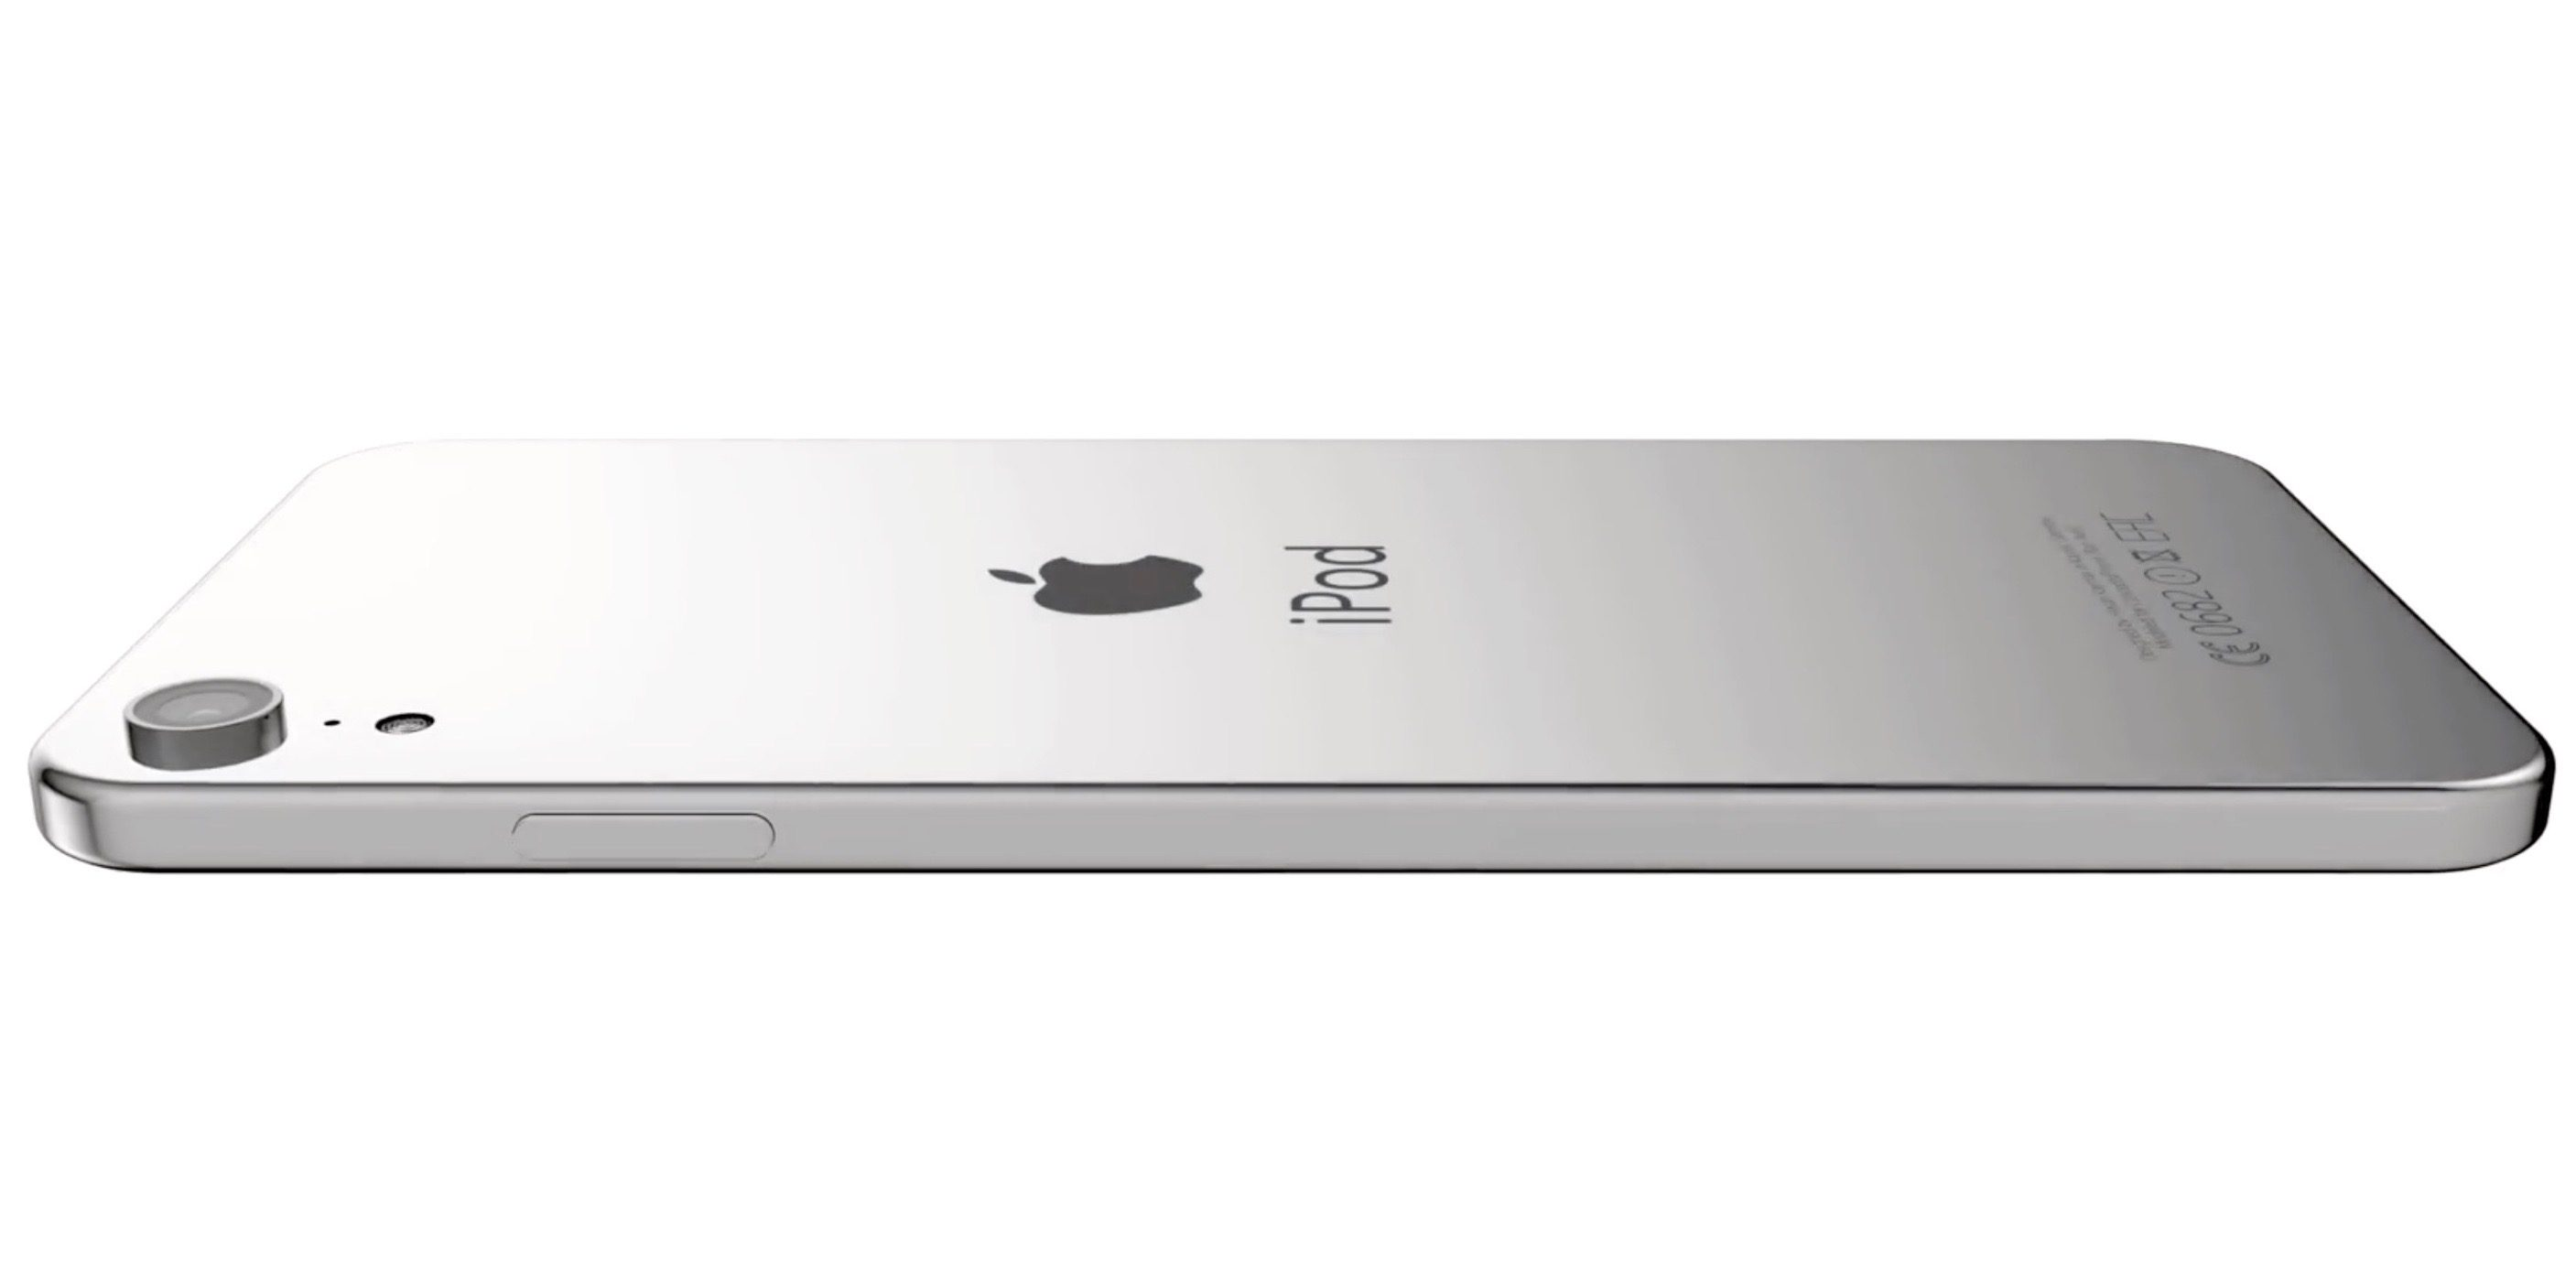 7th-generation-iPod-touch-concept